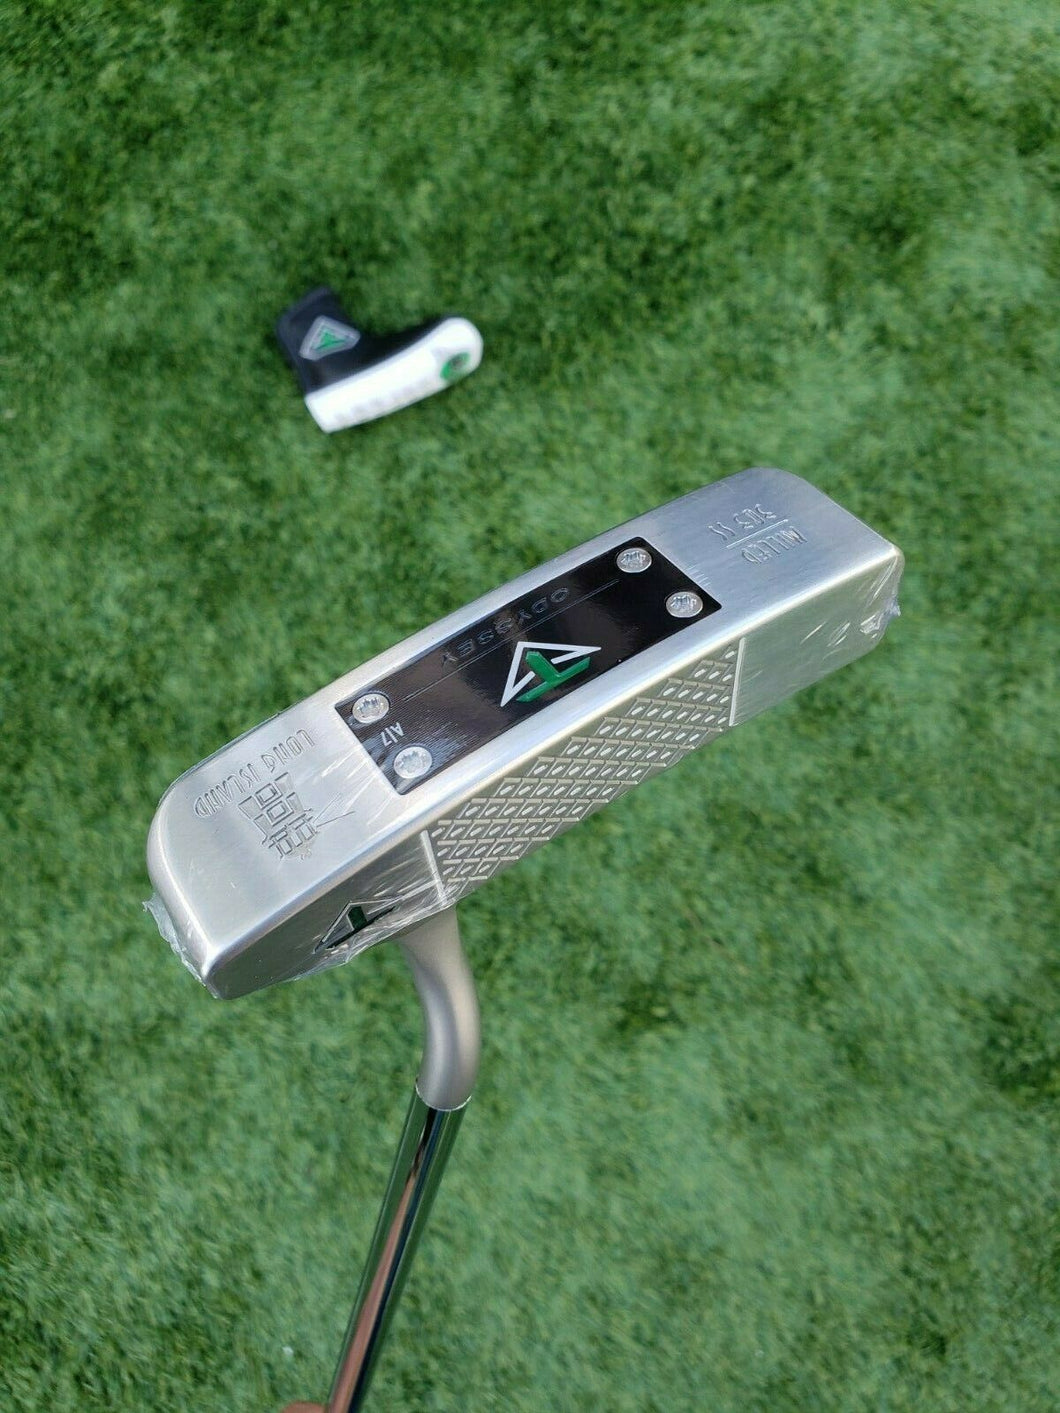 BRAND NEW Toulon Odyssey Long Island Milled 303 SS Putter w. A/7 weights 35